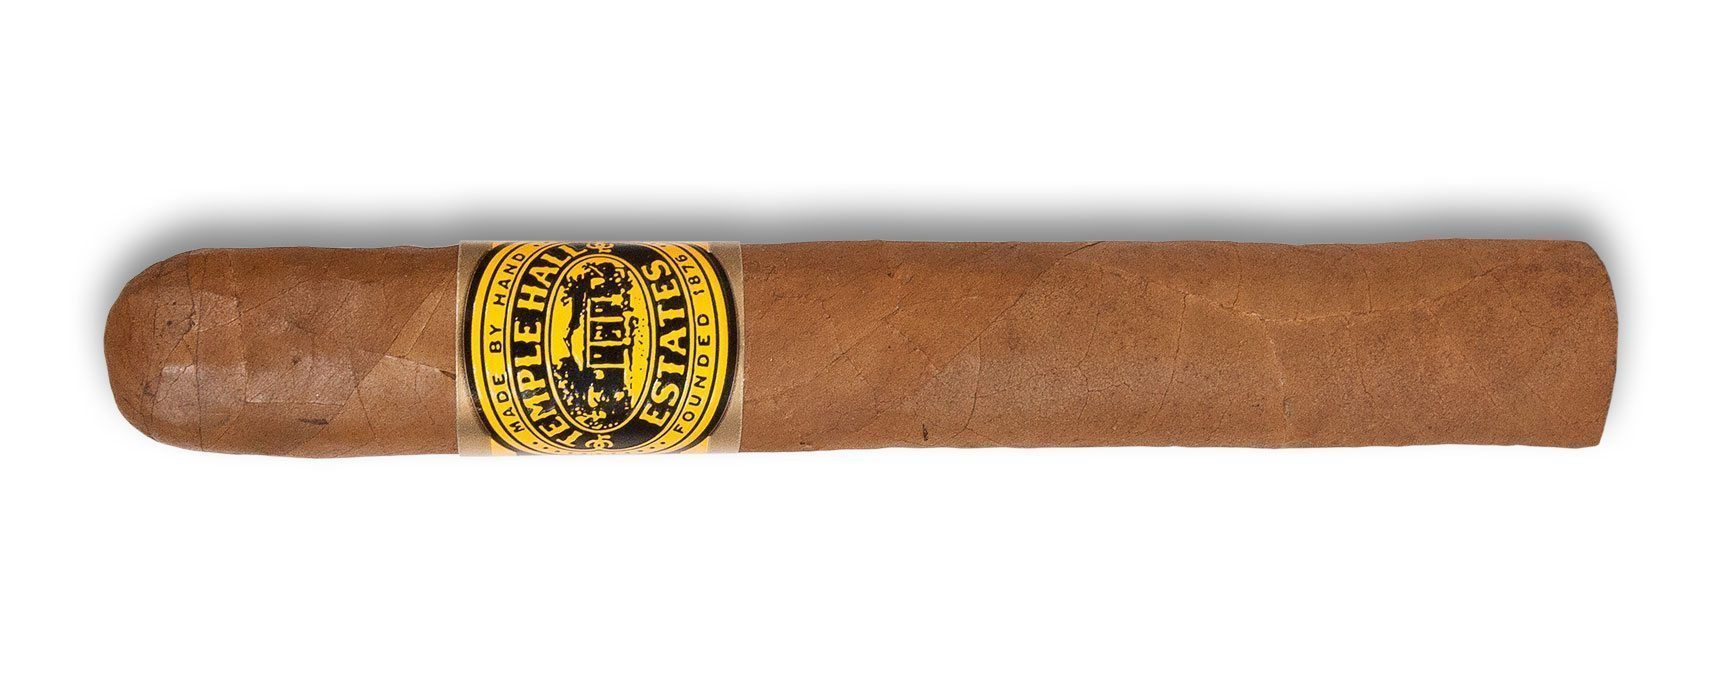 Cigar News: Foundry Tobacco Company Releases Temple Hall Estates